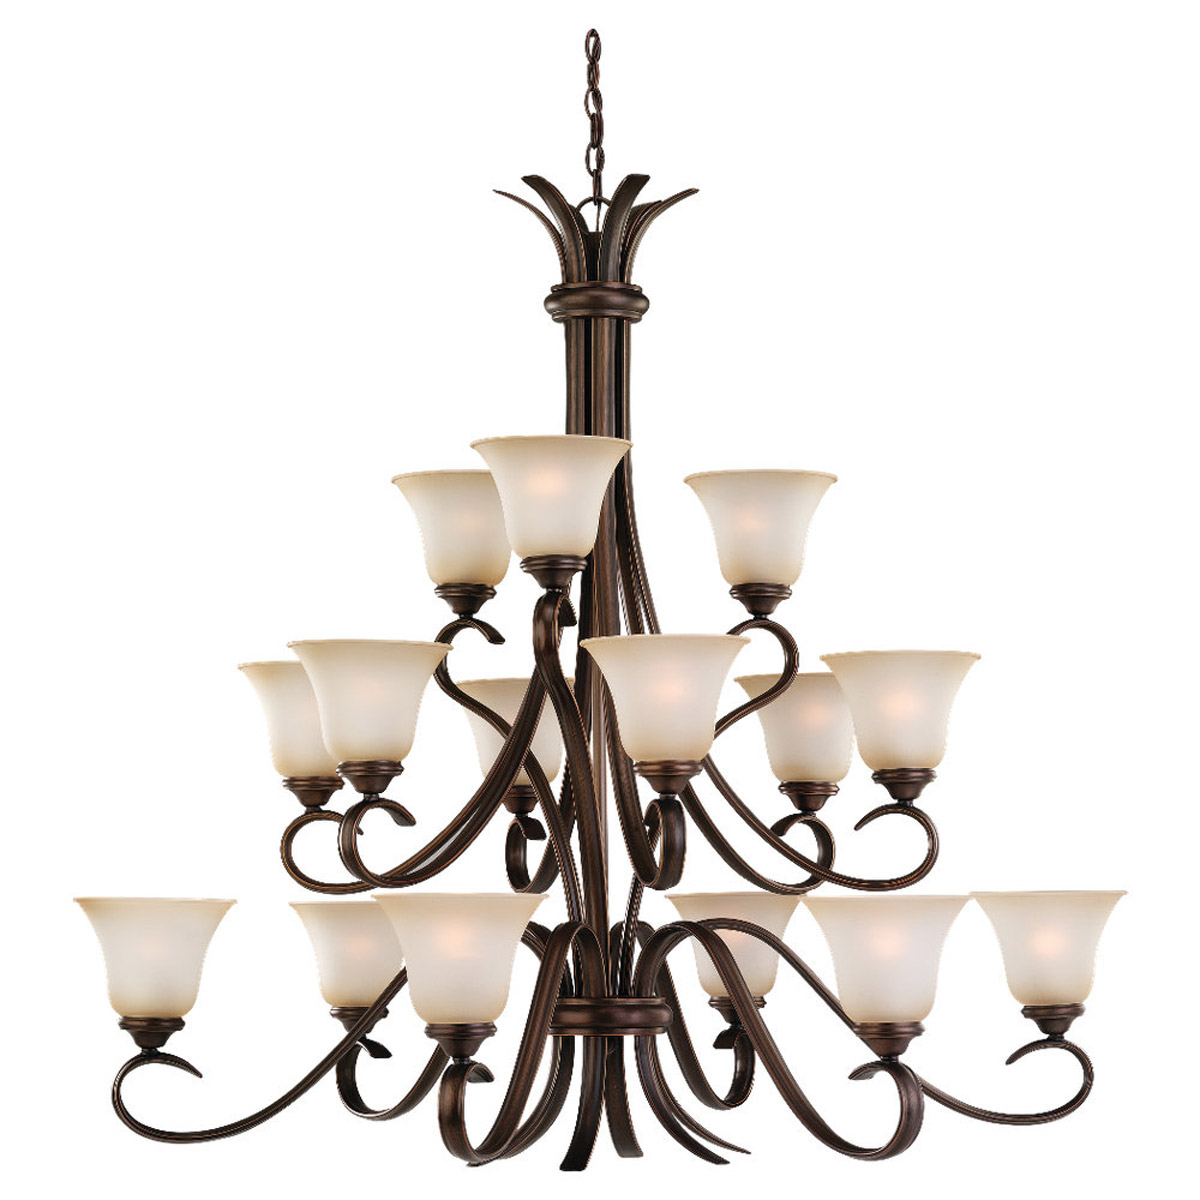 Sea Gull 31363-829 Rialto 15 Light 45 inch Russet Bronze Chandelier Ceiling Light in Ginger Glass photo